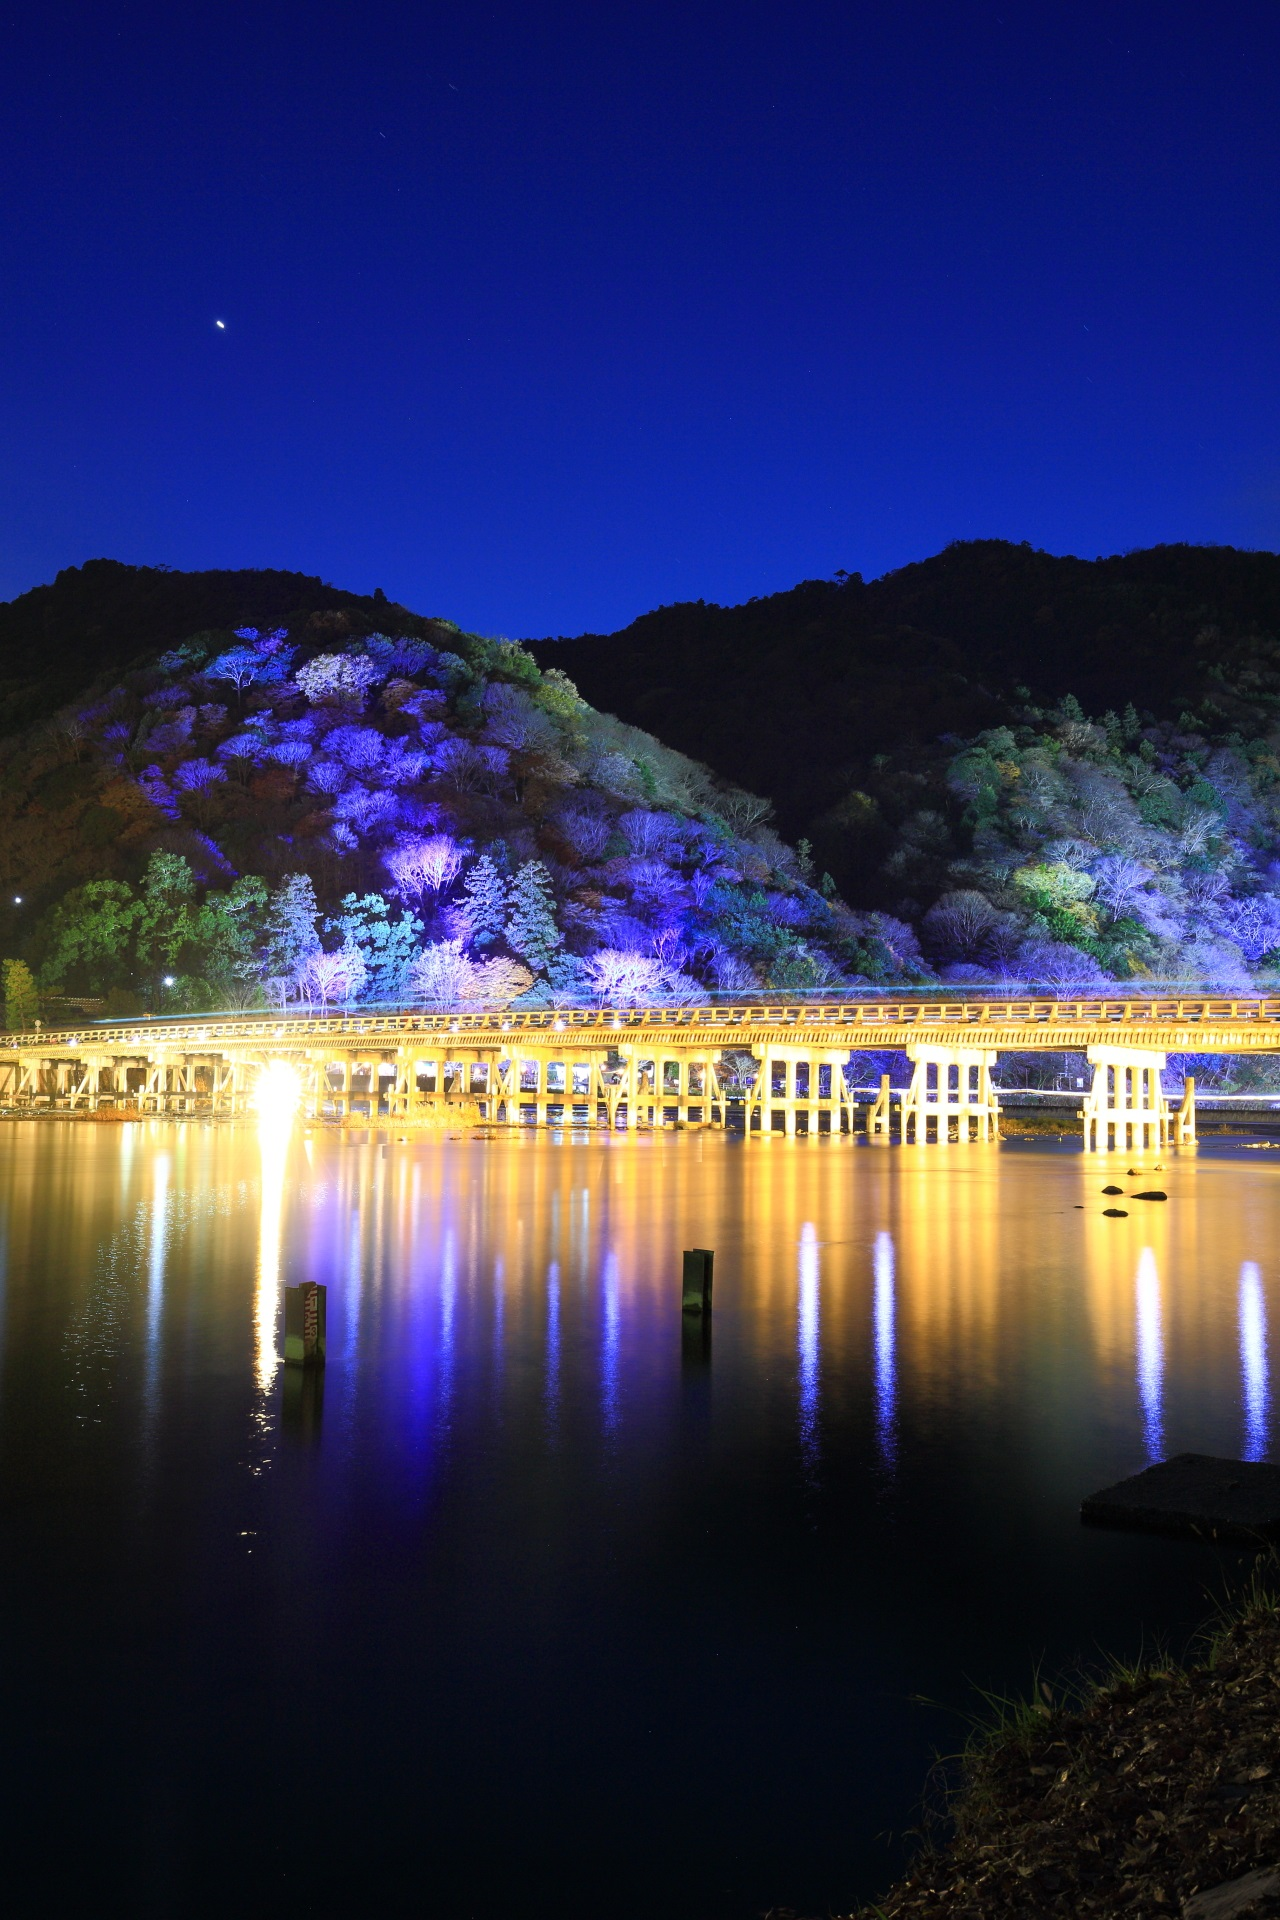 Kyoto Arashiyama-Hanatoro Lightup Togetsu-kyo Bridge and Hozugawa River